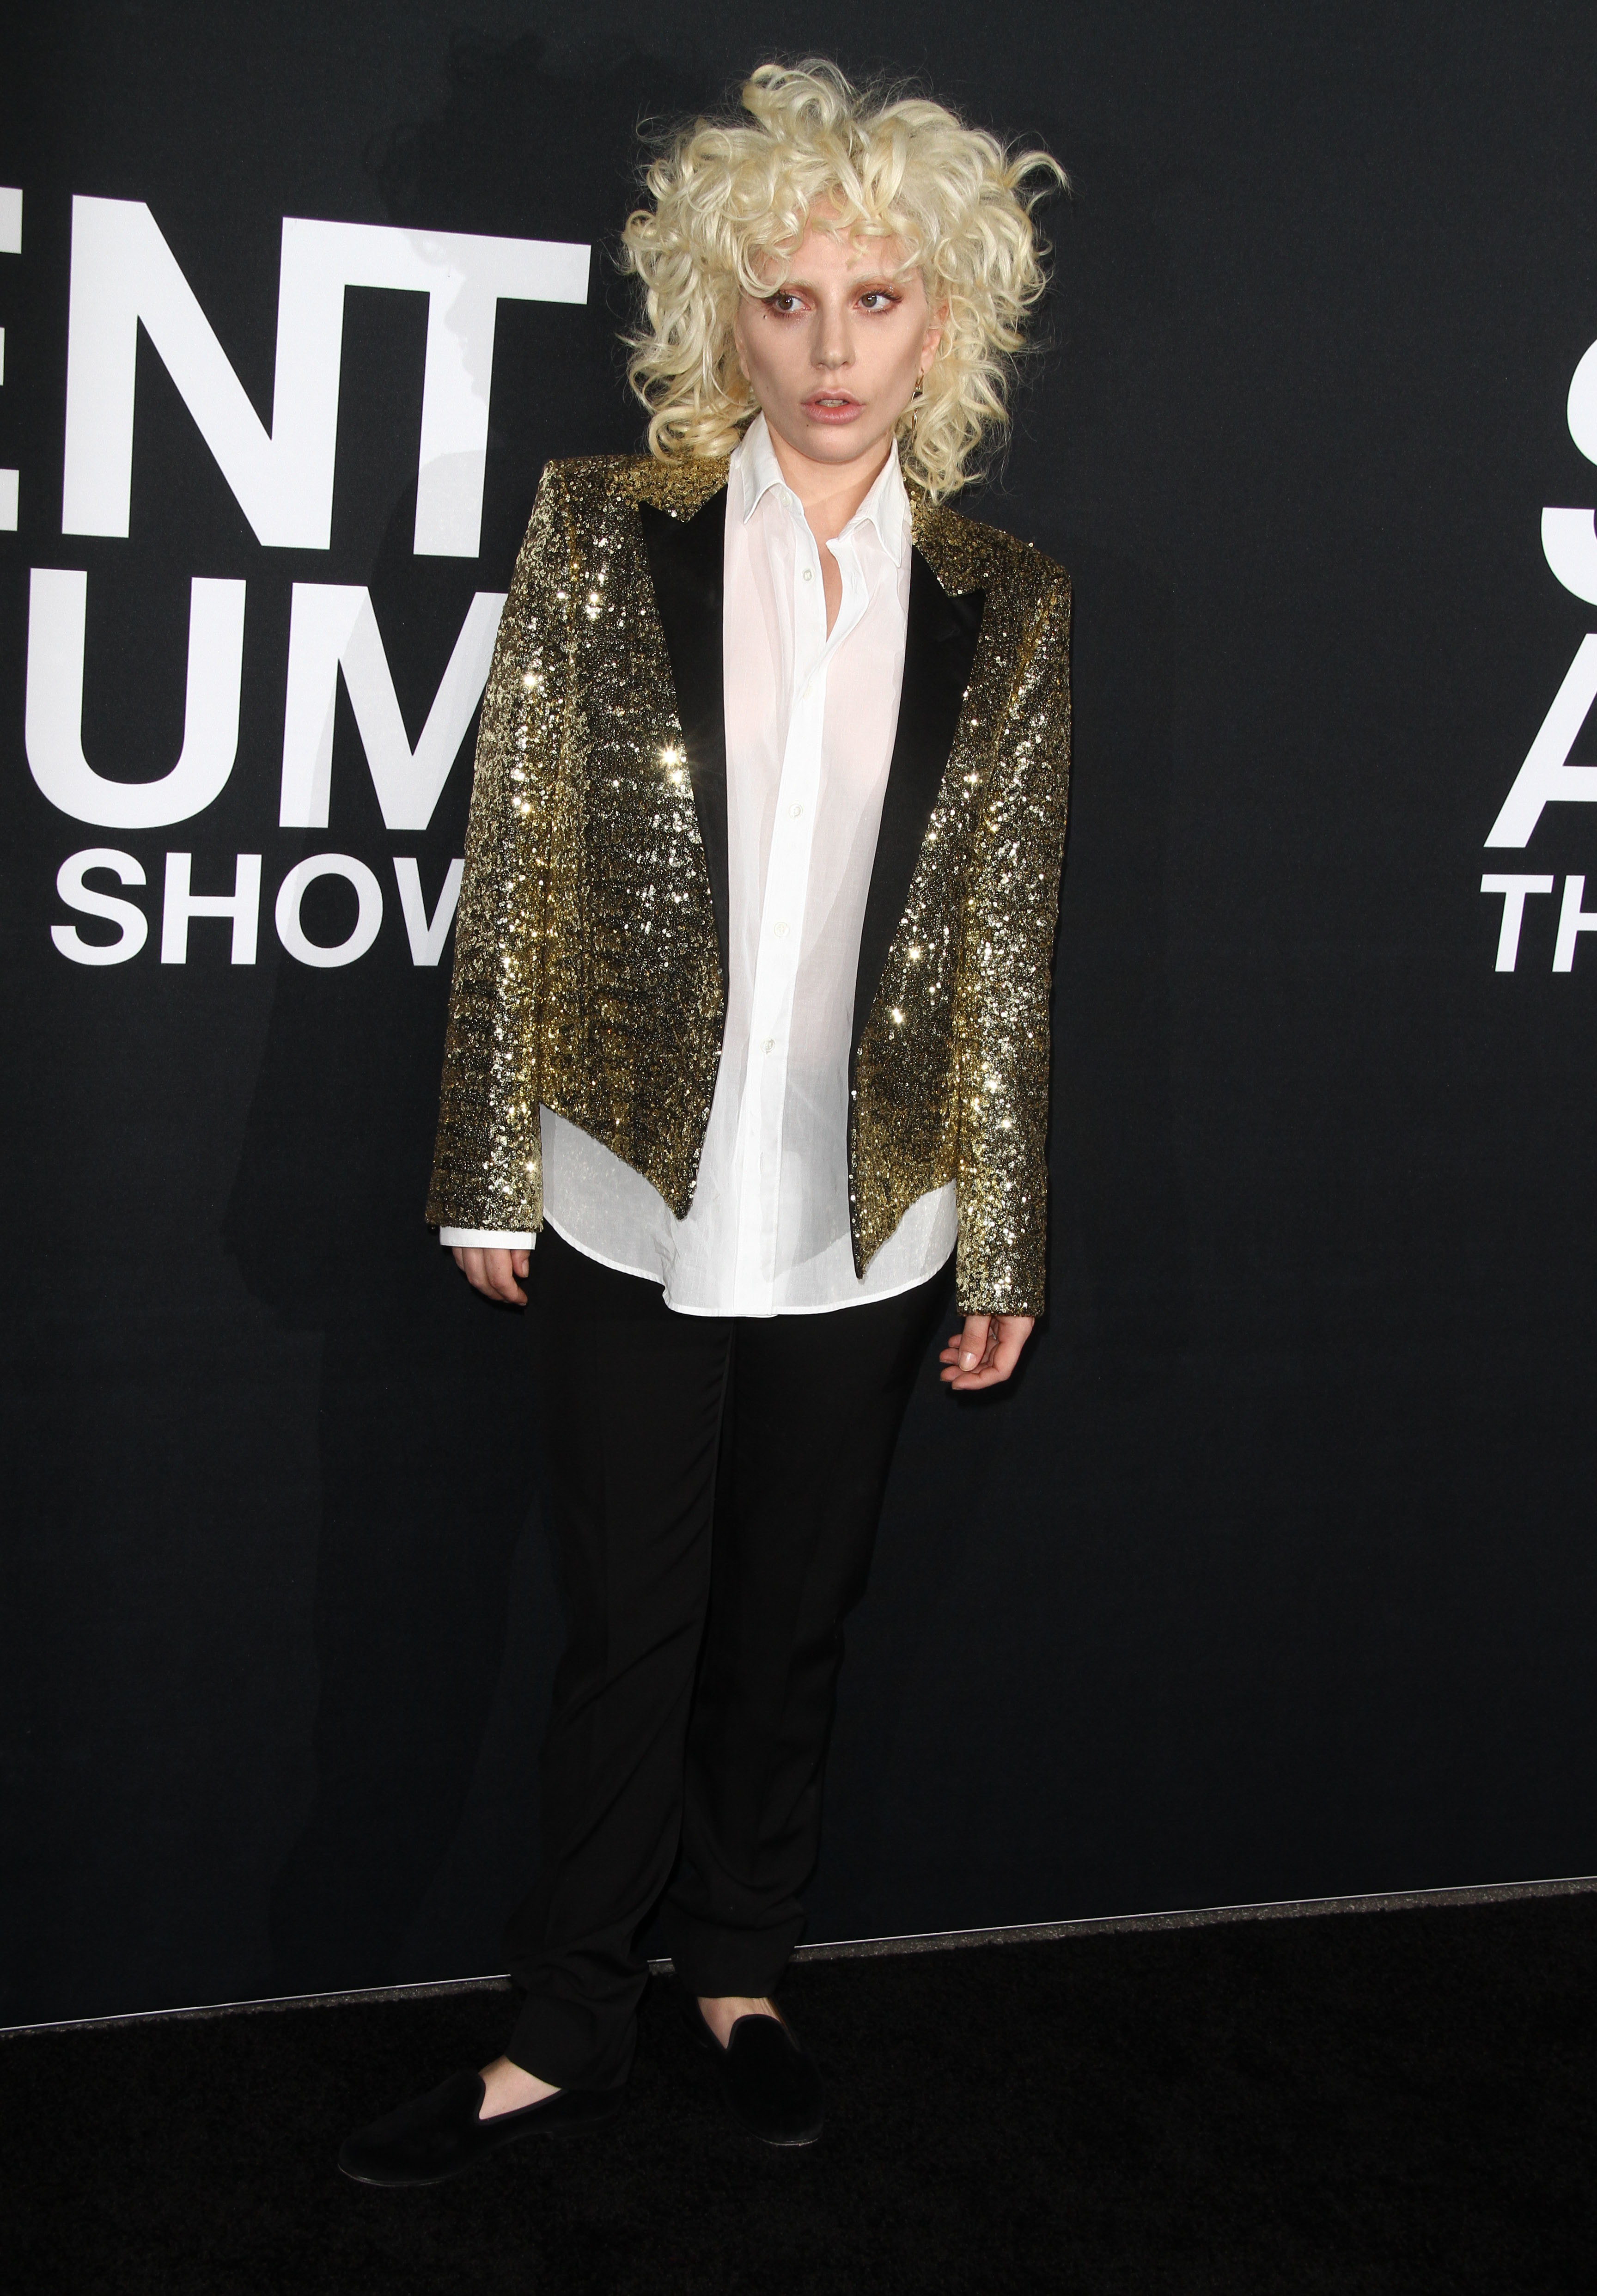 Lady Gaga debuts a new look for Saint Laurent